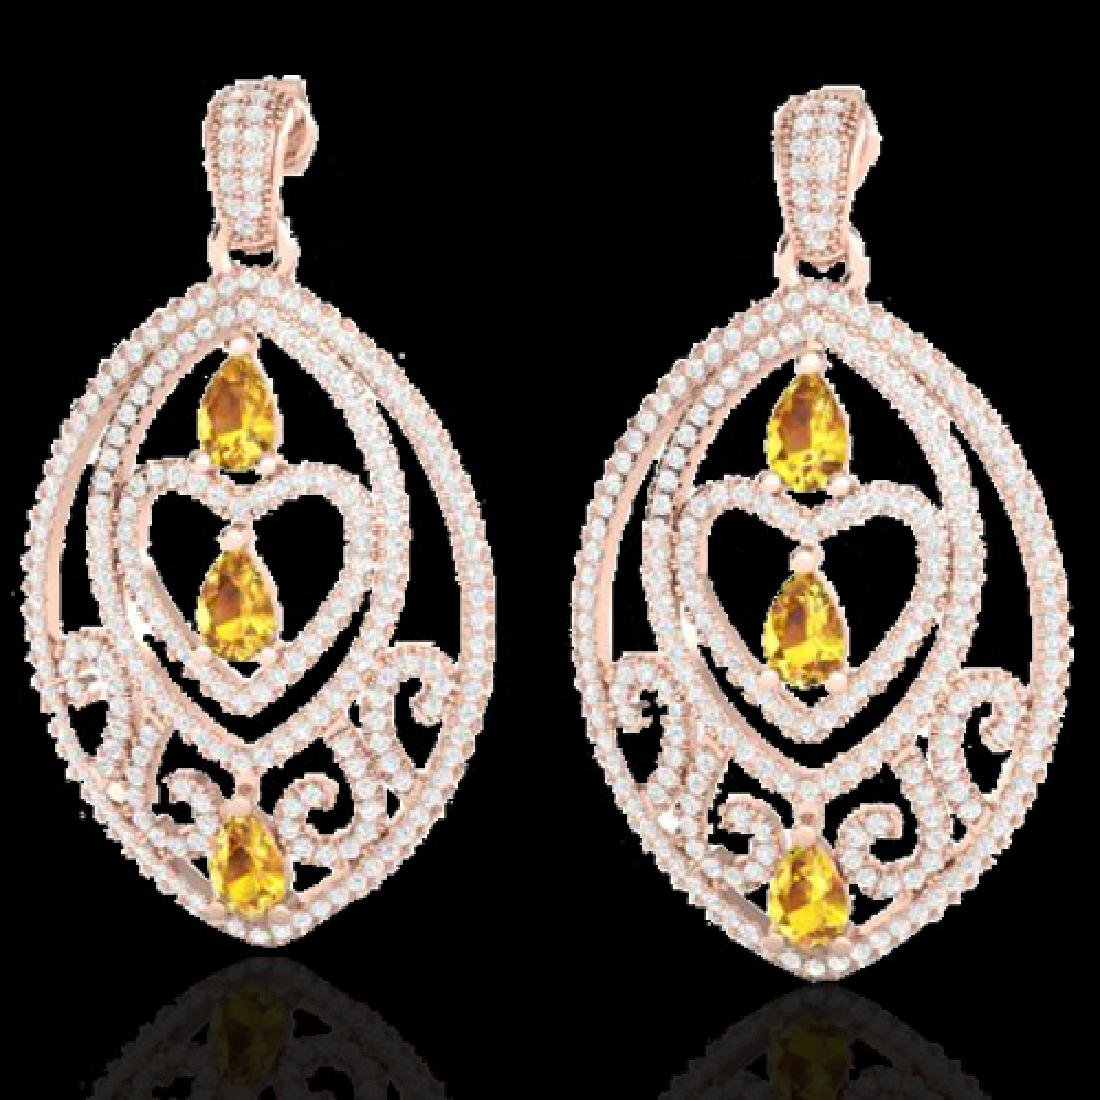 7 CTW Yellow Sapphire & Micro Pave VS/SI Diamond Heart